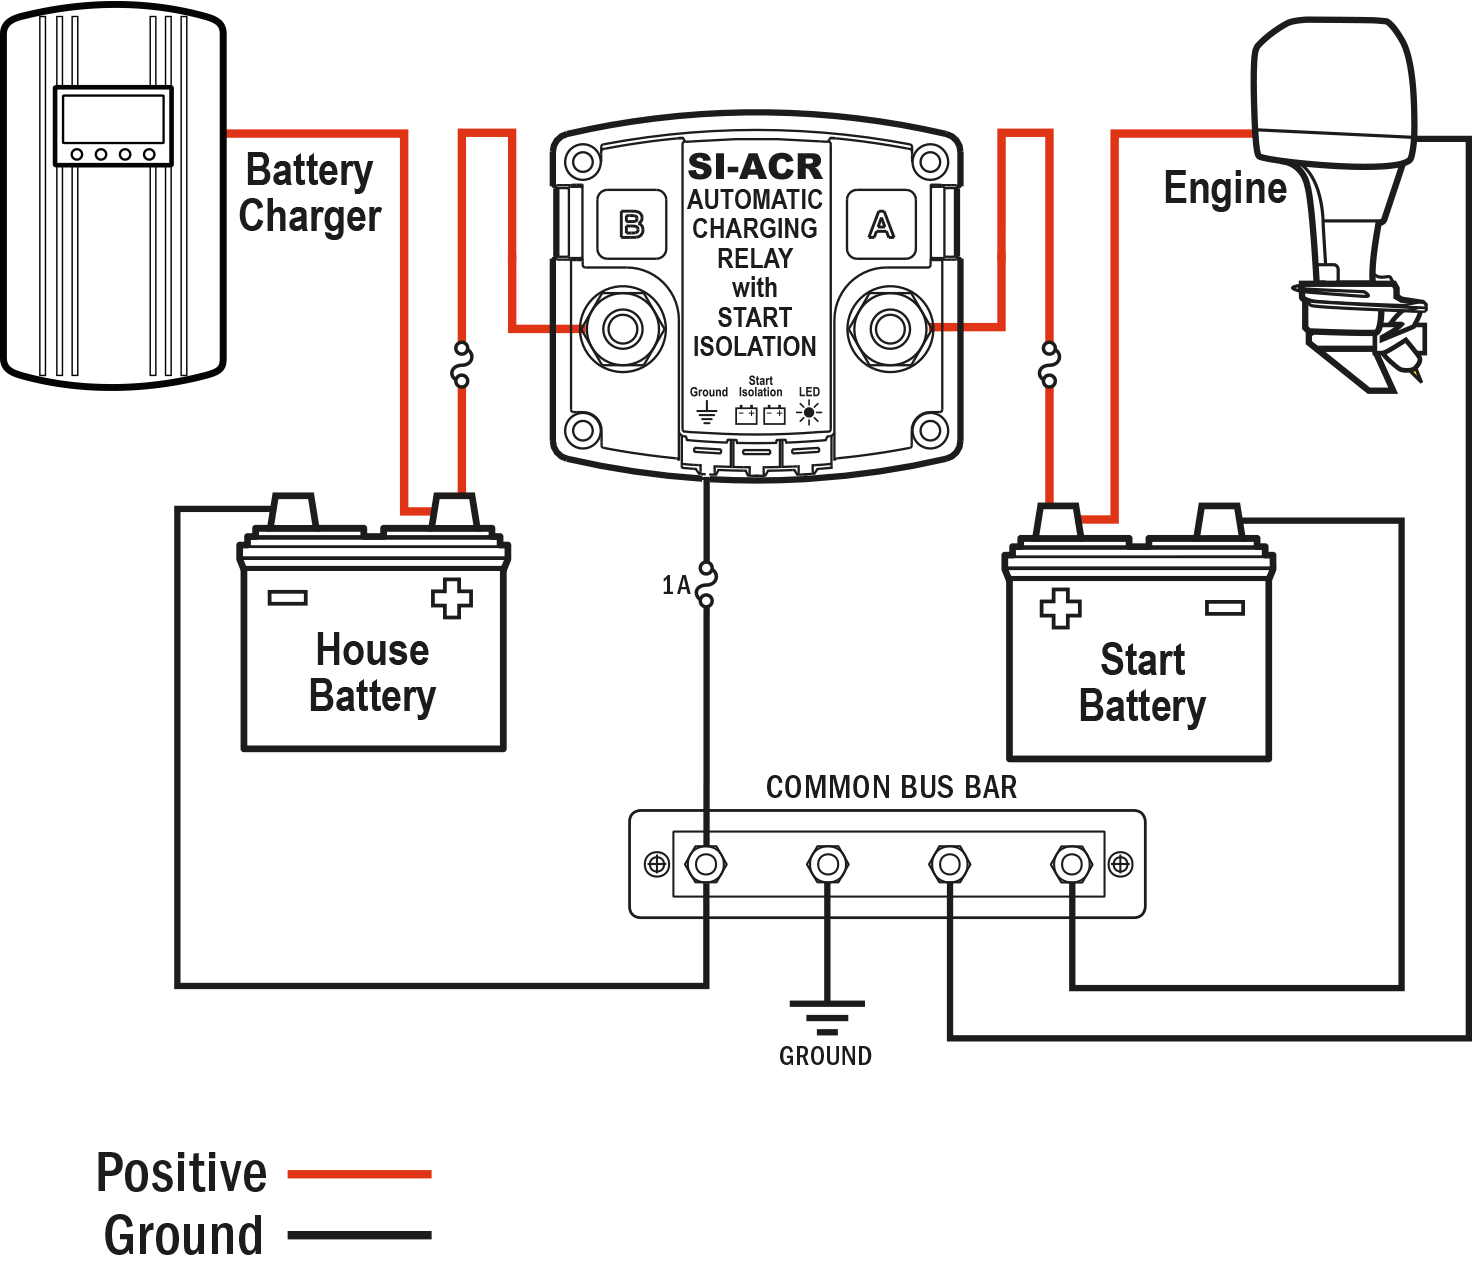 Blue Relay Wiring Diagrams Pin Diagram What Is An Automotive Si Acr Automatic Charging 12 24v Dc 120a Faq 8